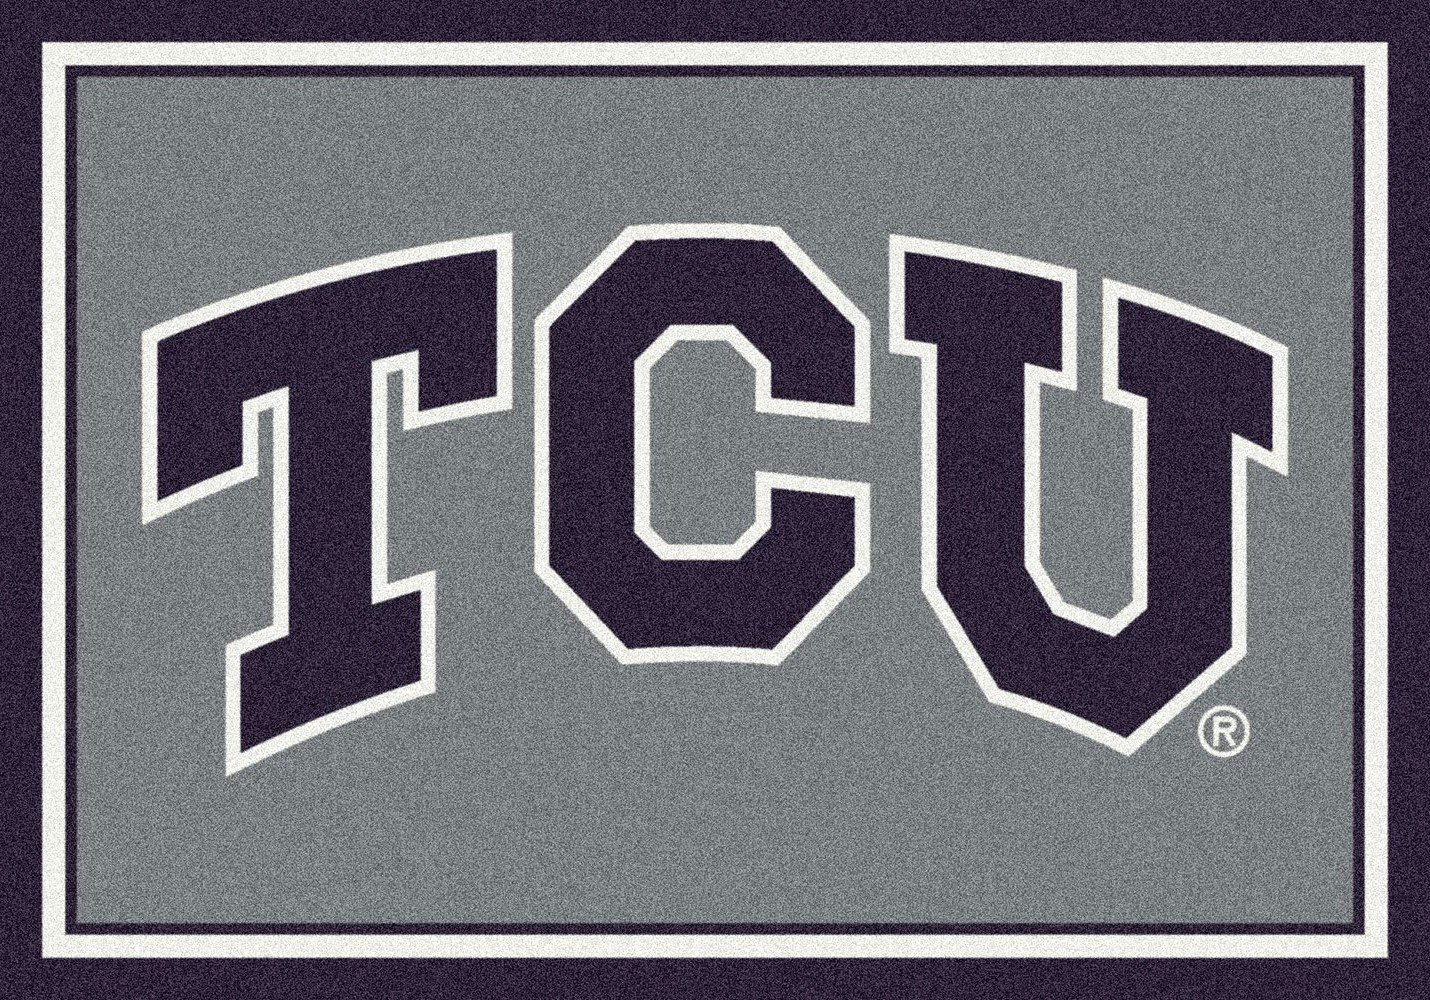 Texas Christian Horned Frogs NCAA College Team Spirit Team Area Rug 7'8''x10'9'' by American Floor Mats